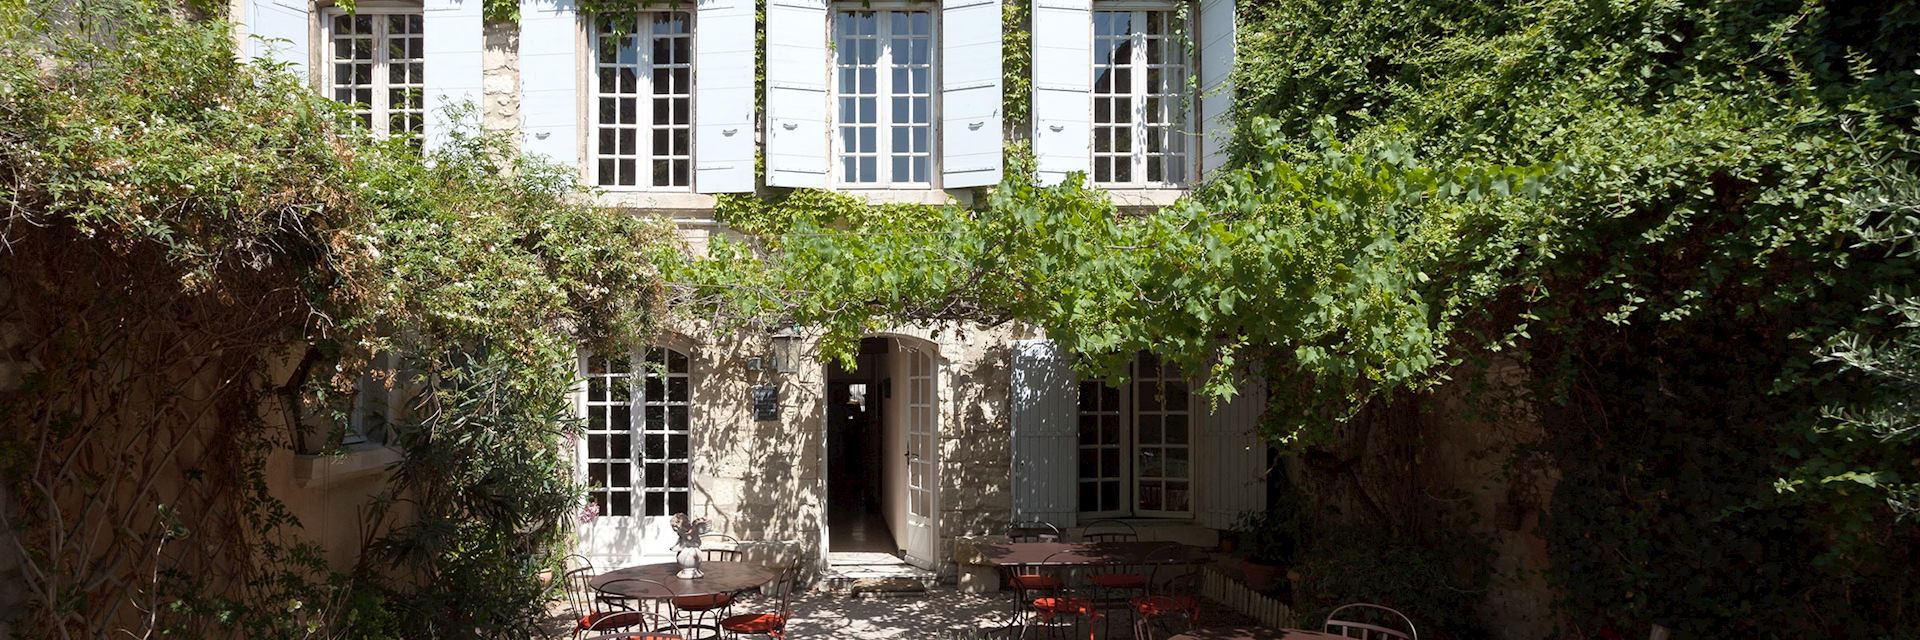 Hotel L'Atelier, Provence